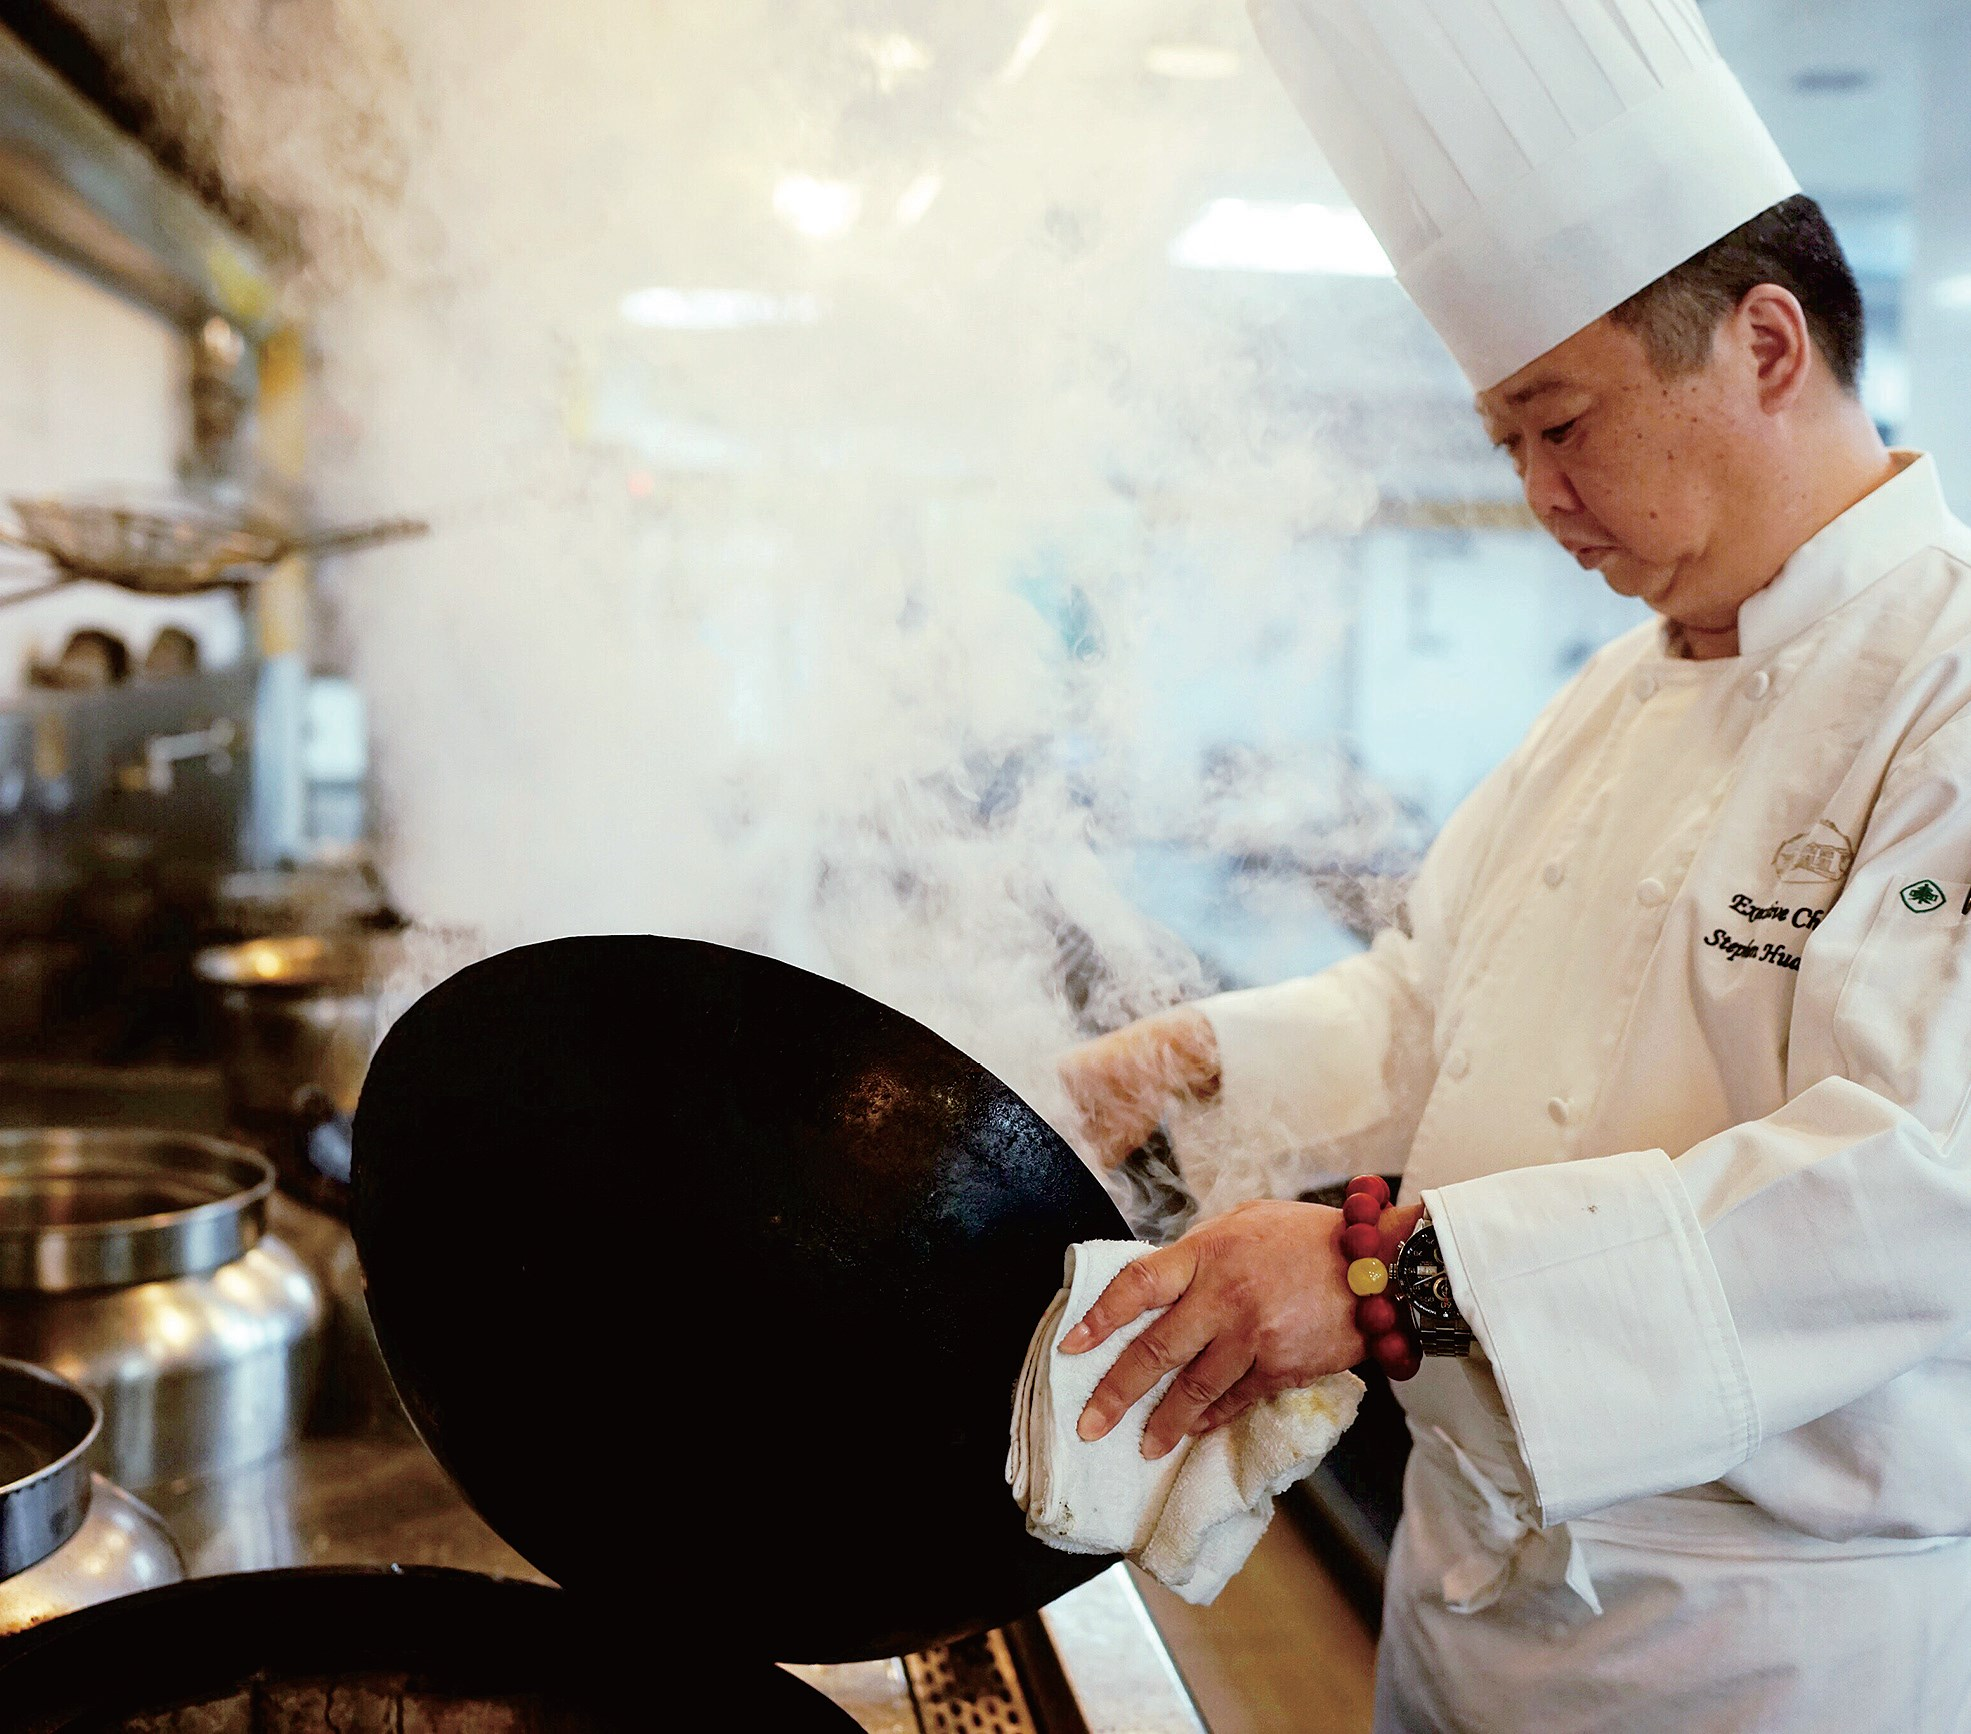 Huang Xin, a celebrated chef at the Hong Qiao State Guest Hotel in Shanghai, has cooked at more than 100 state banquets and receptions in the city.